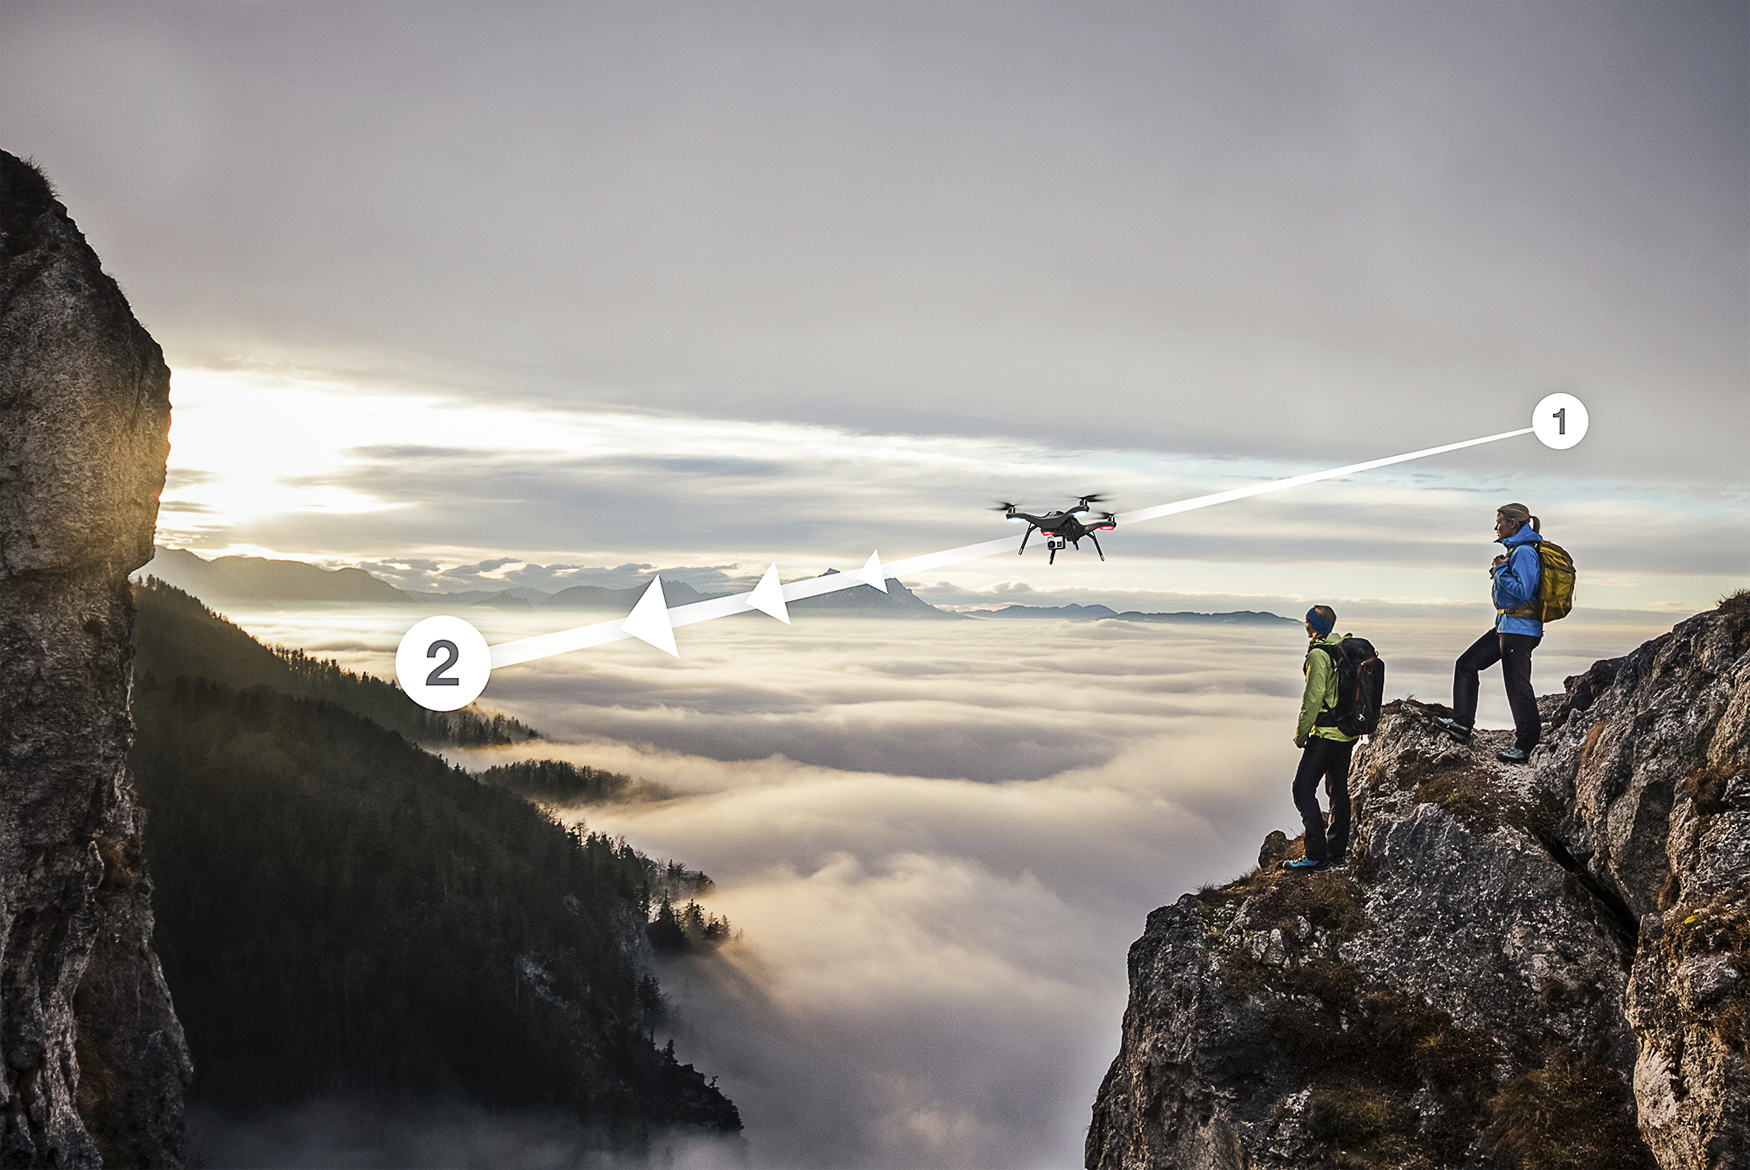 Capturing Stunning Video and Photography with the Best Buy 3DR Solo Drone